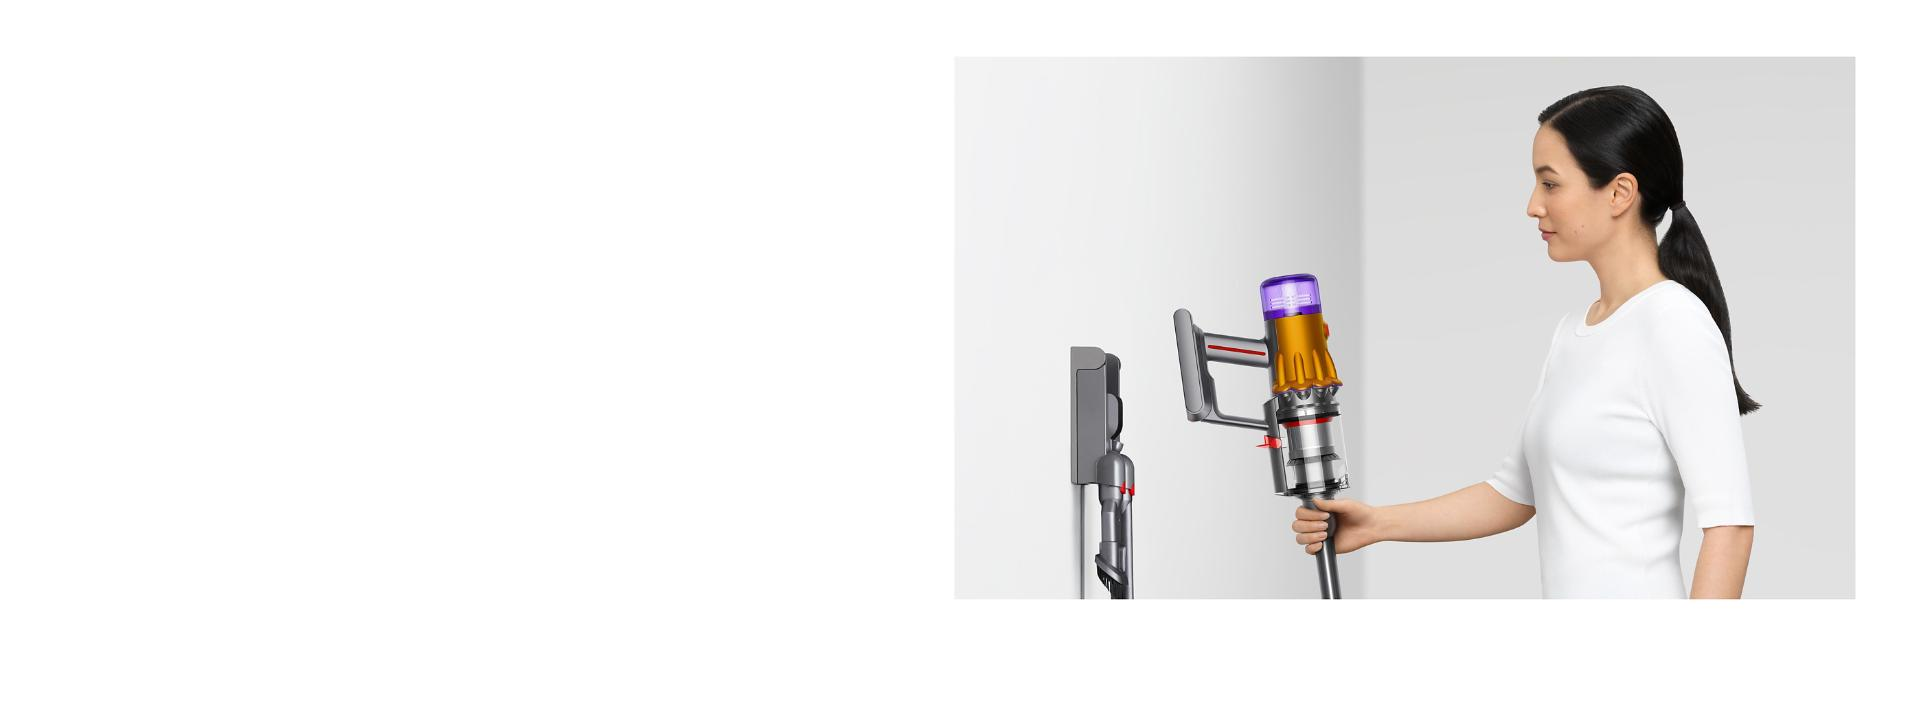 Plugging in the Dyson V12 Detect Slim vacuum